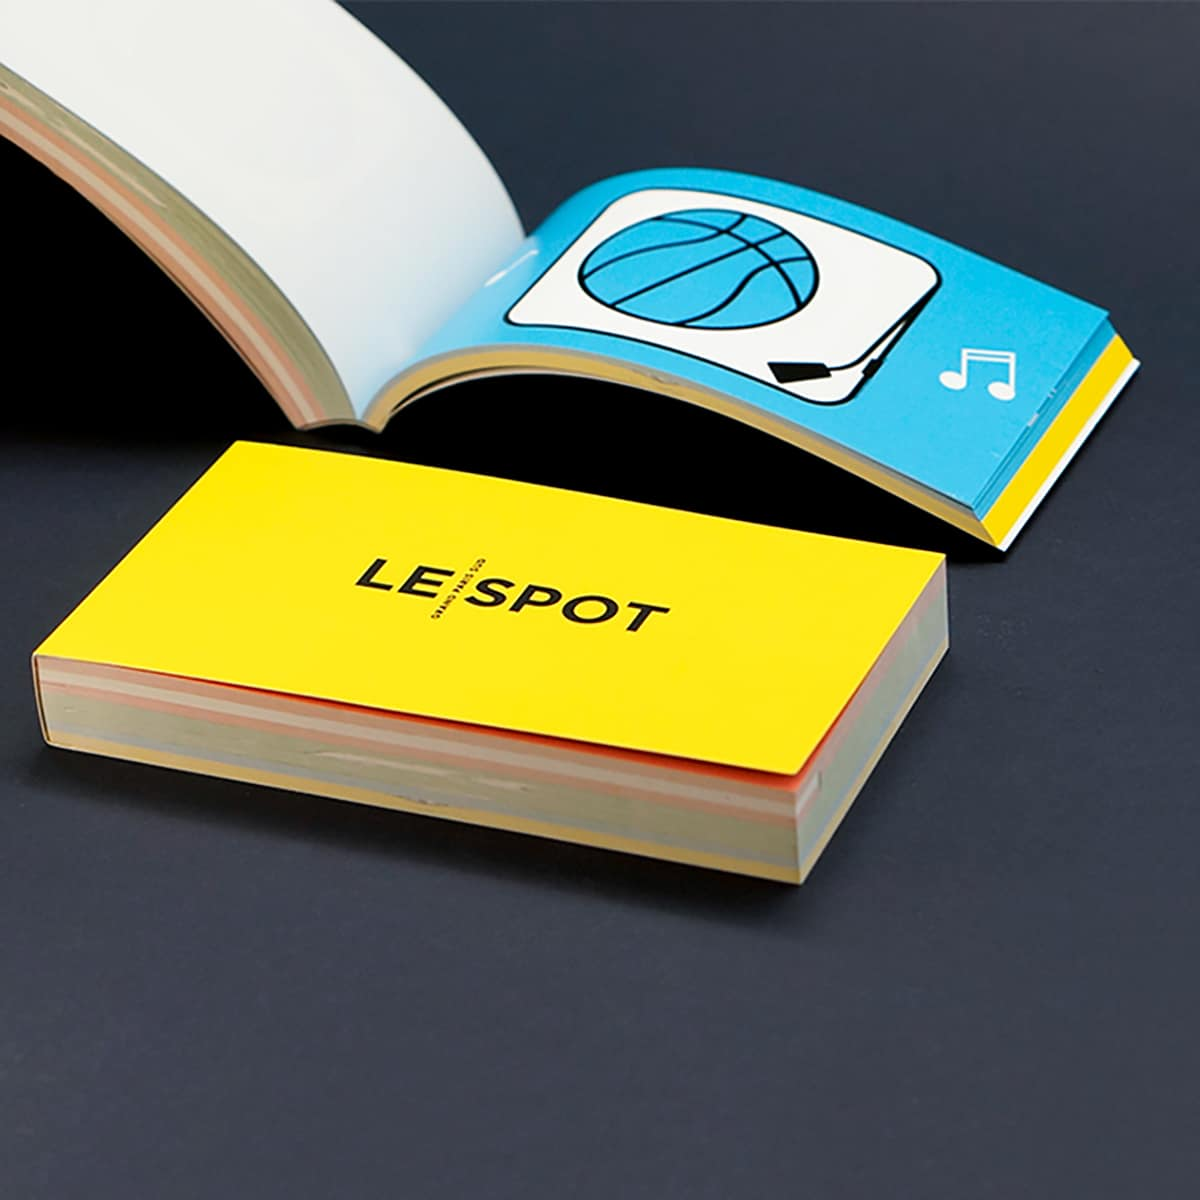 studio-octopus-matador-marketing-le spot-flipbook_4